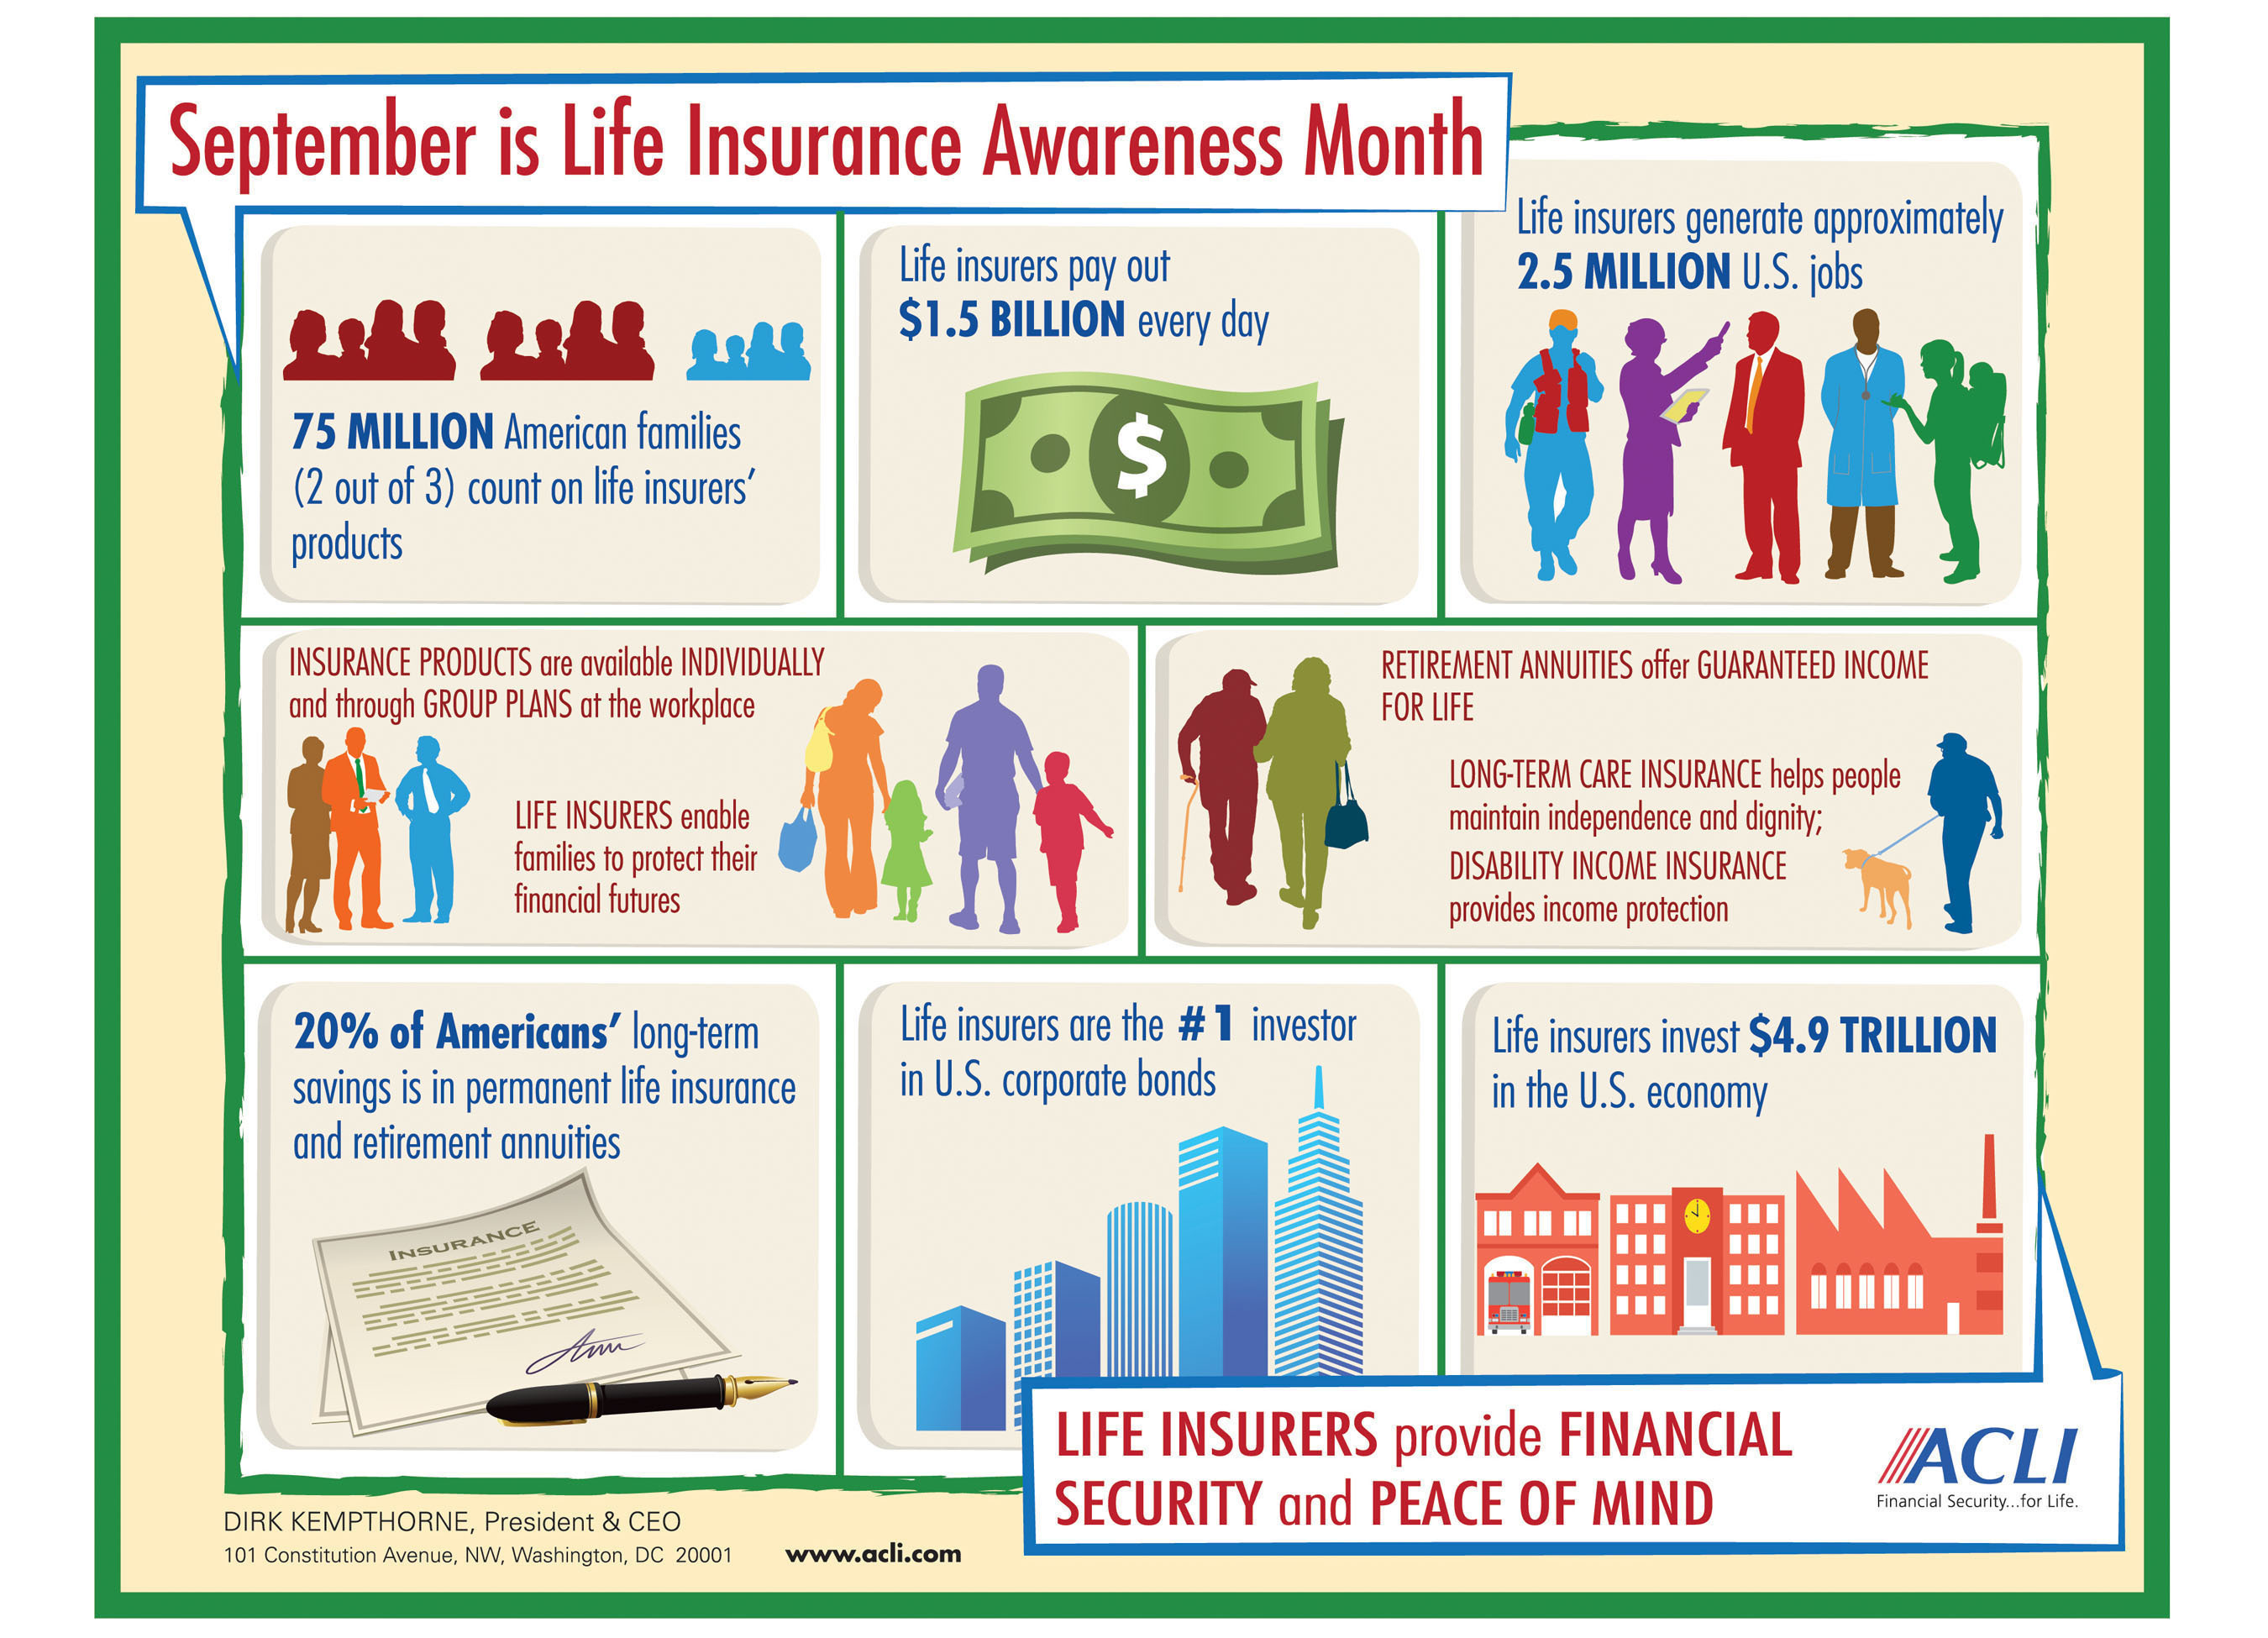 Life insurers play an invaluable role not only in the lives of 75 million American families, but in the nation's economy as well. Learn more at www.acli.com.  (PRNewsFoto/American Council of Life Insurers)